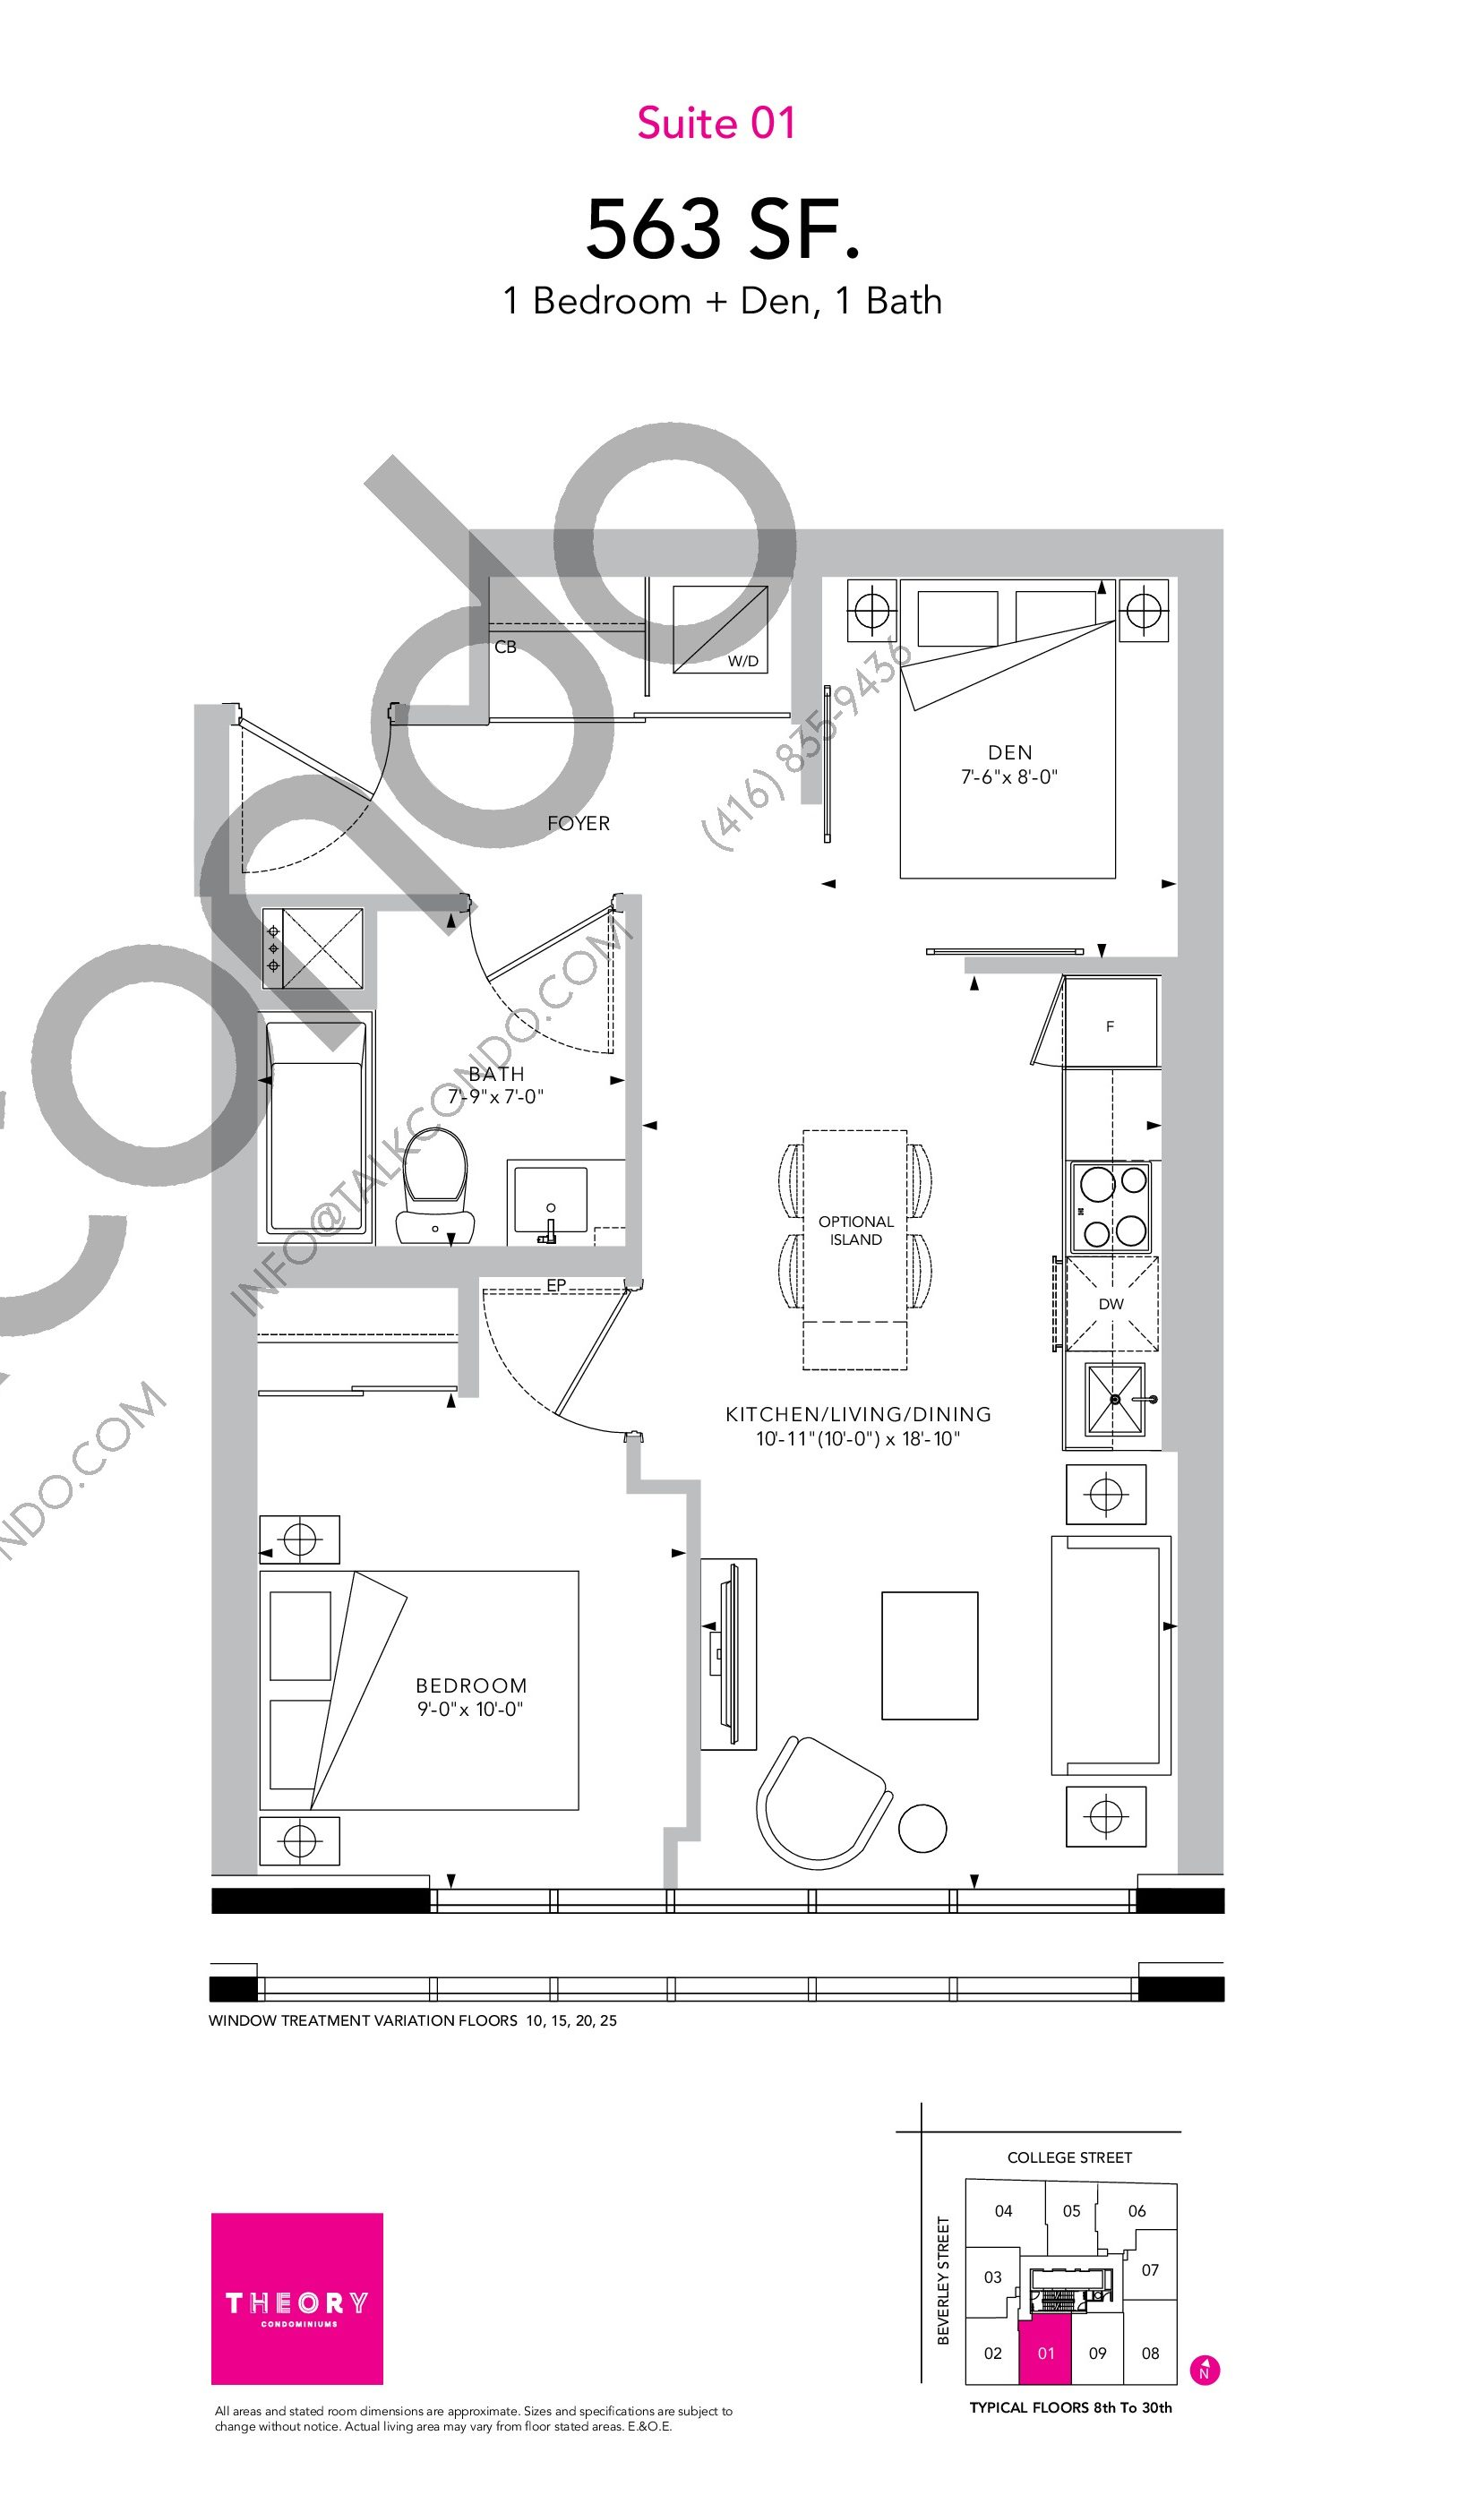 Suite 01 Floor Plan at Theory Condos - 563 sq.ft